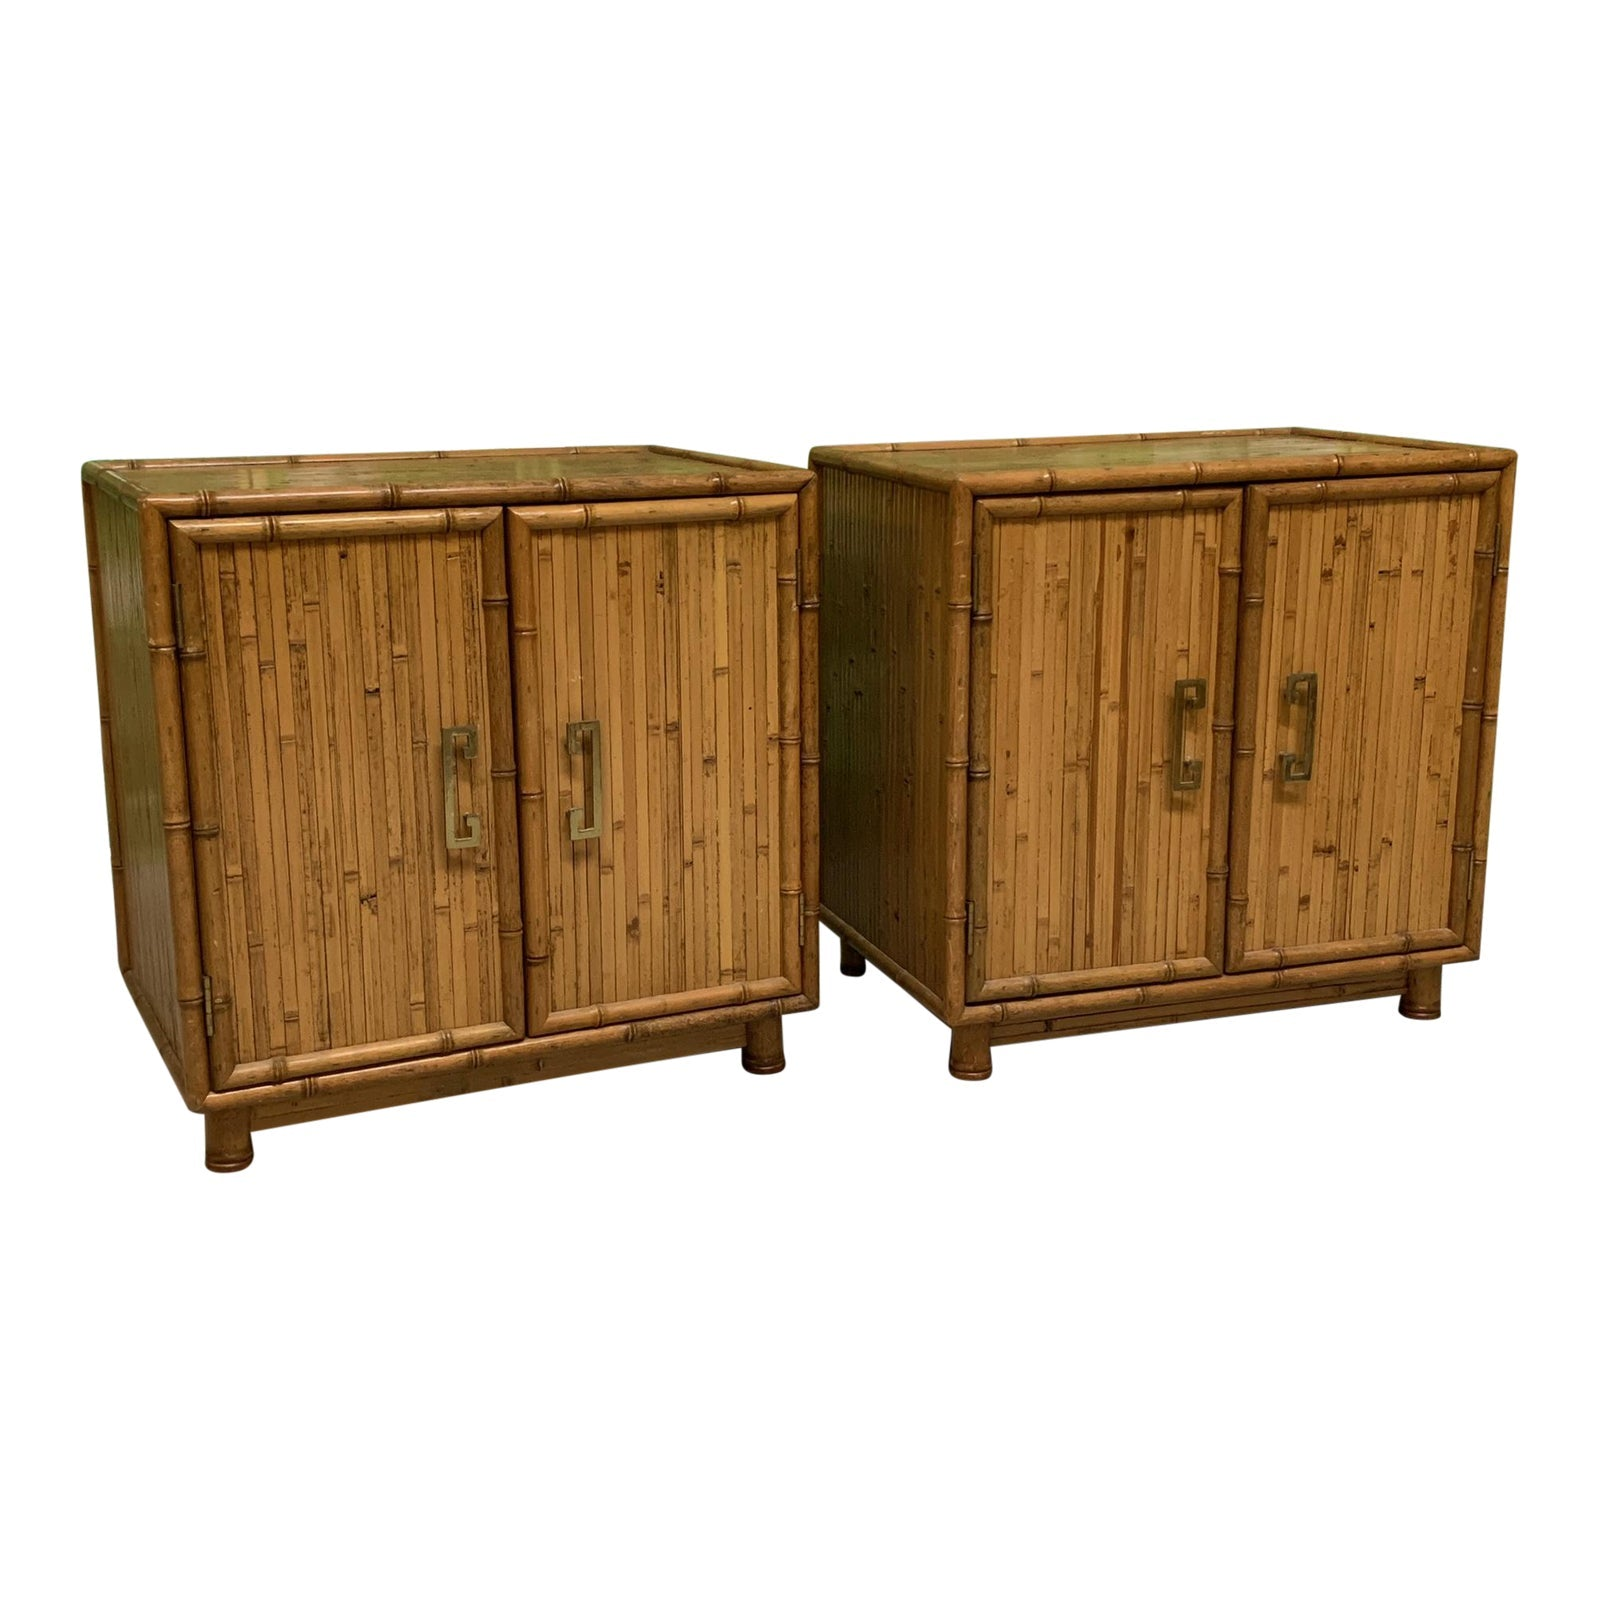 Bamboo and Rattan Chinoiserie Nightstands